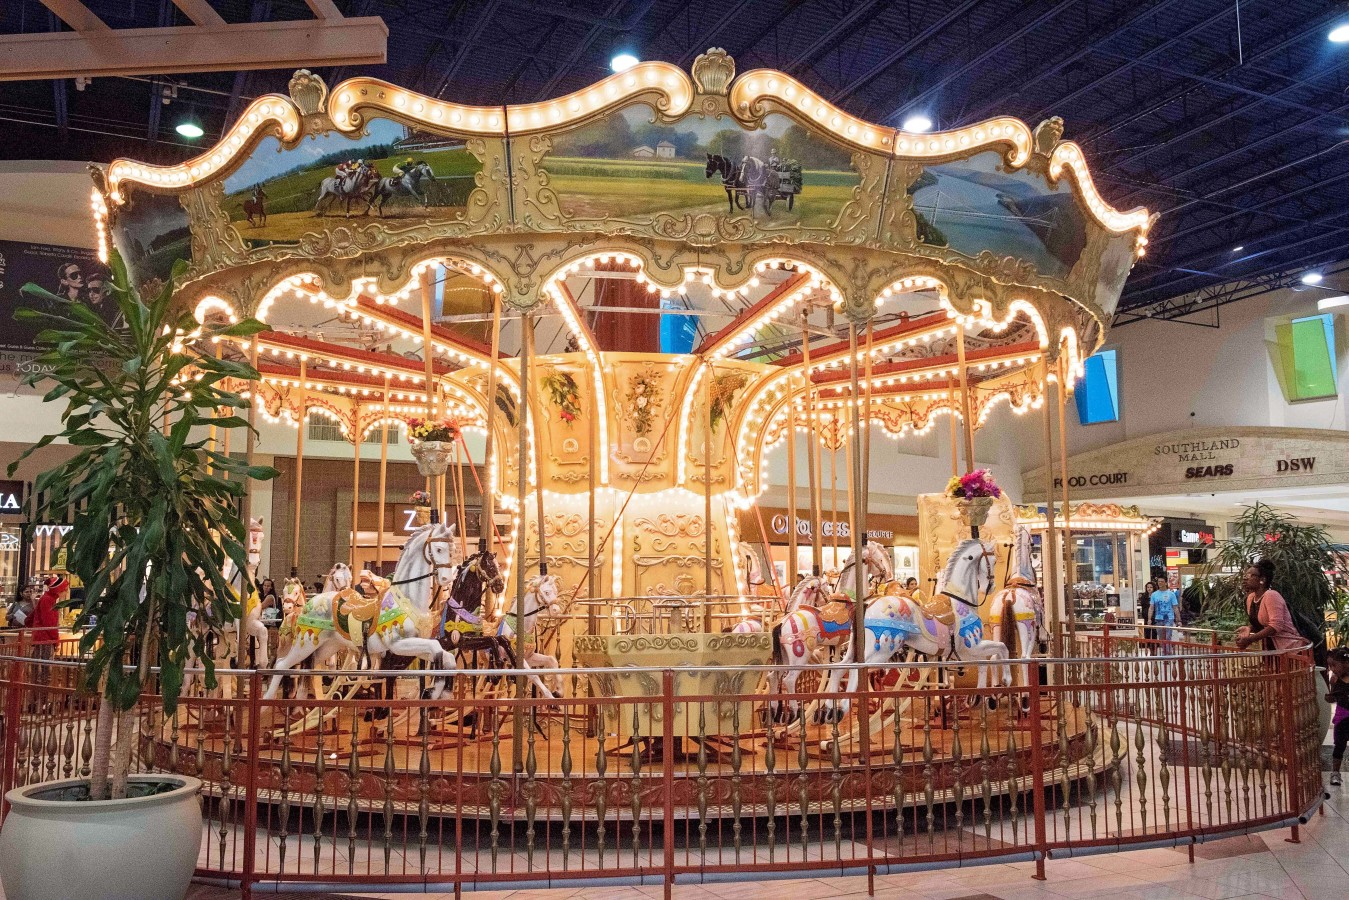 Children's Carousel at Southland Mall